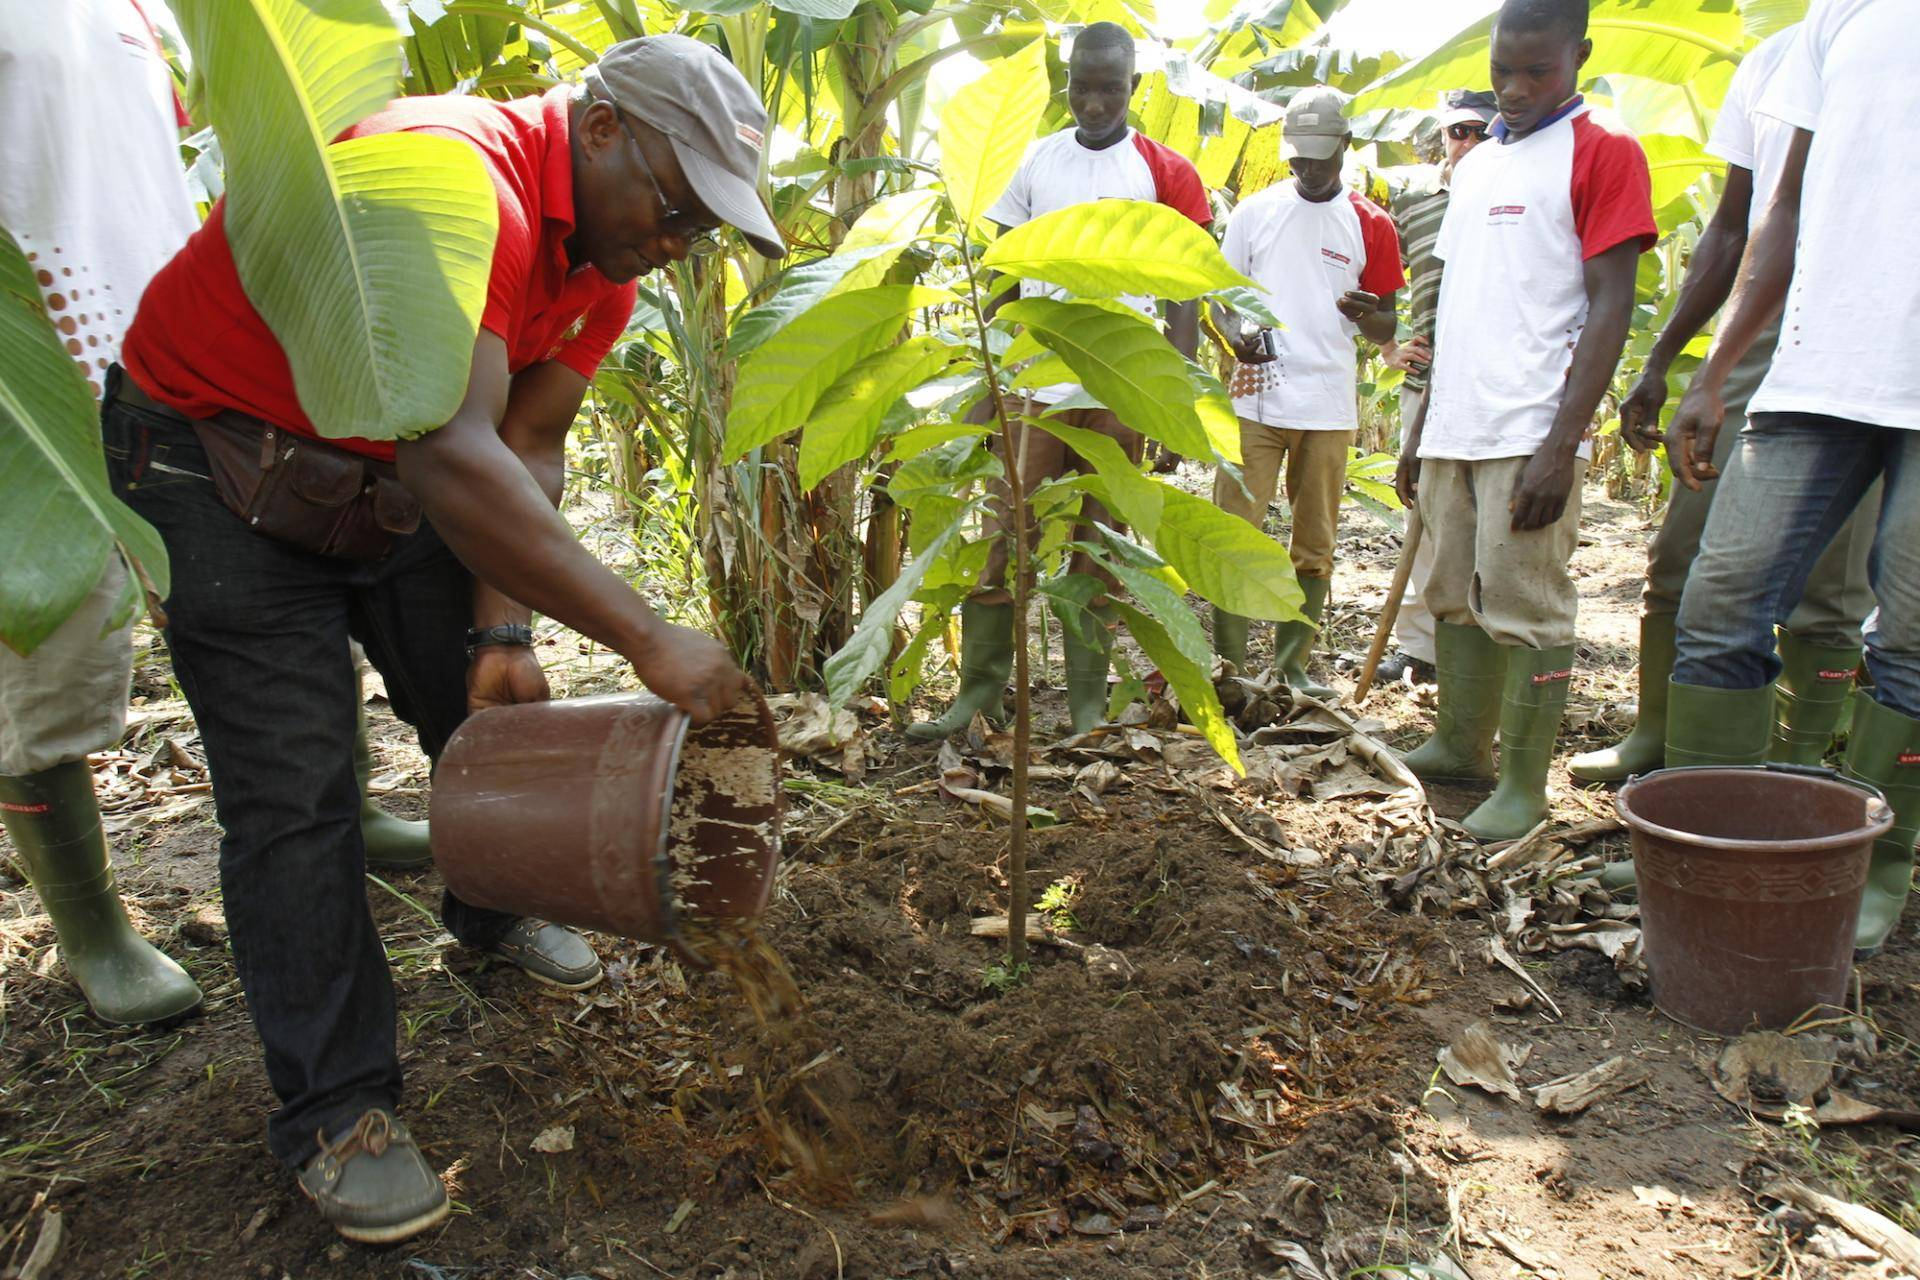 Cocoa farmers in West Africa